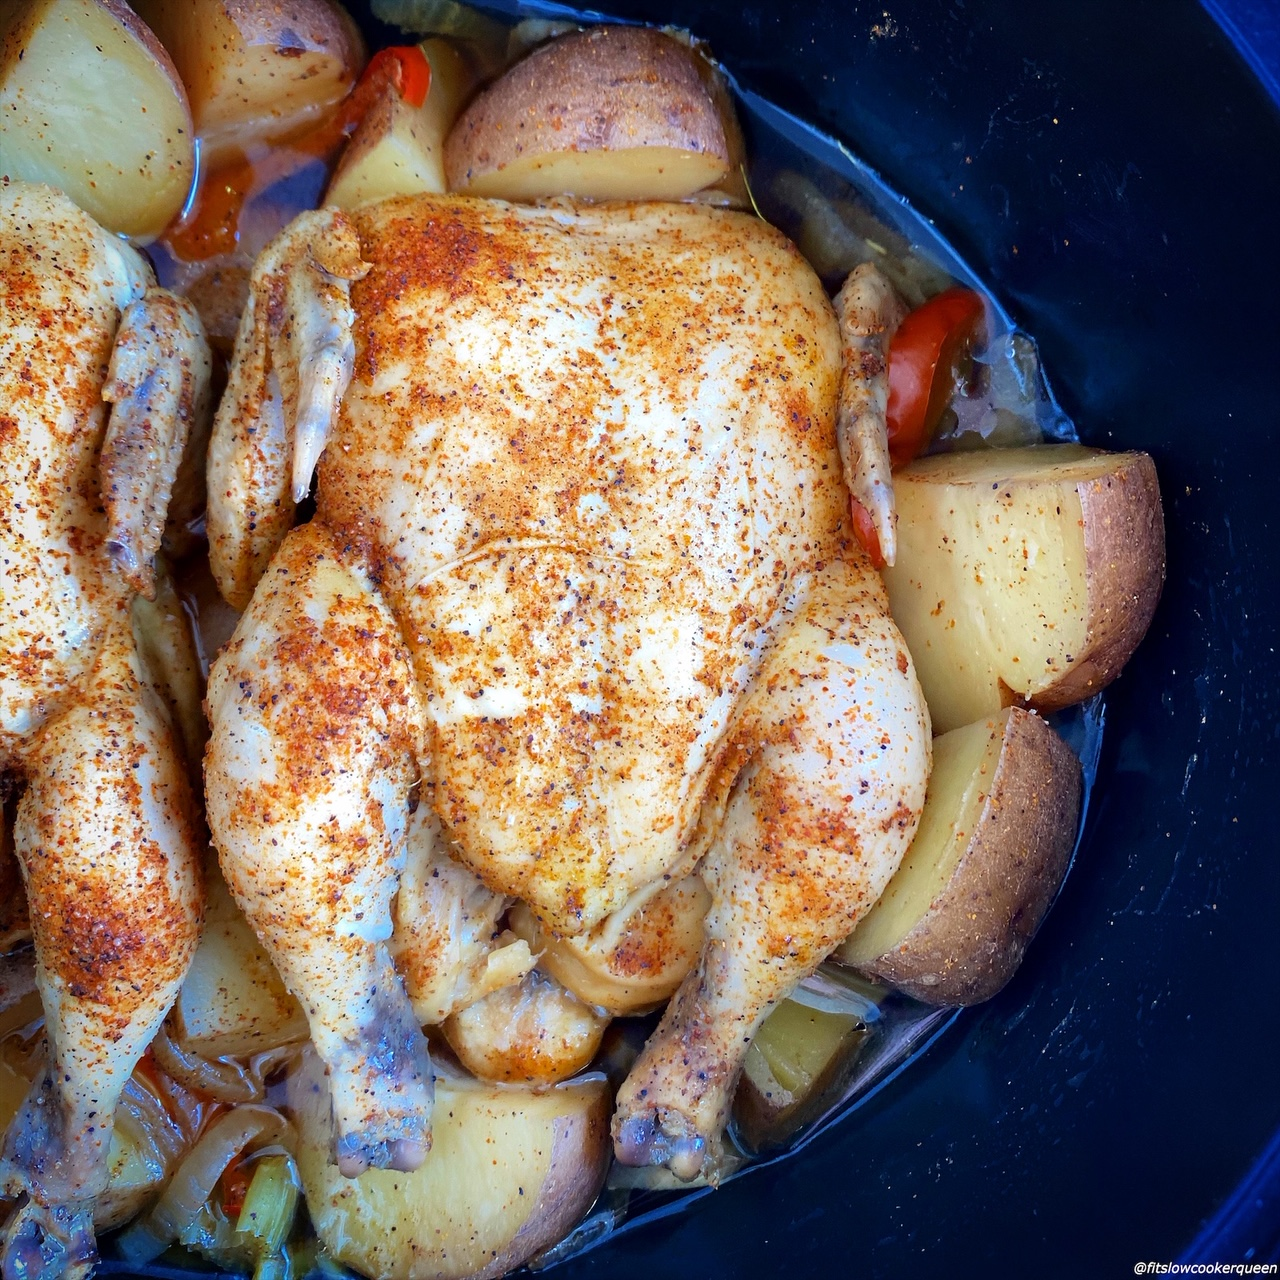 cooked creole seasoned Cornish hens in the slow cooker on top of potatoes, bell peppers, celery, and onions in the slow cooker with Creole seasoning on top